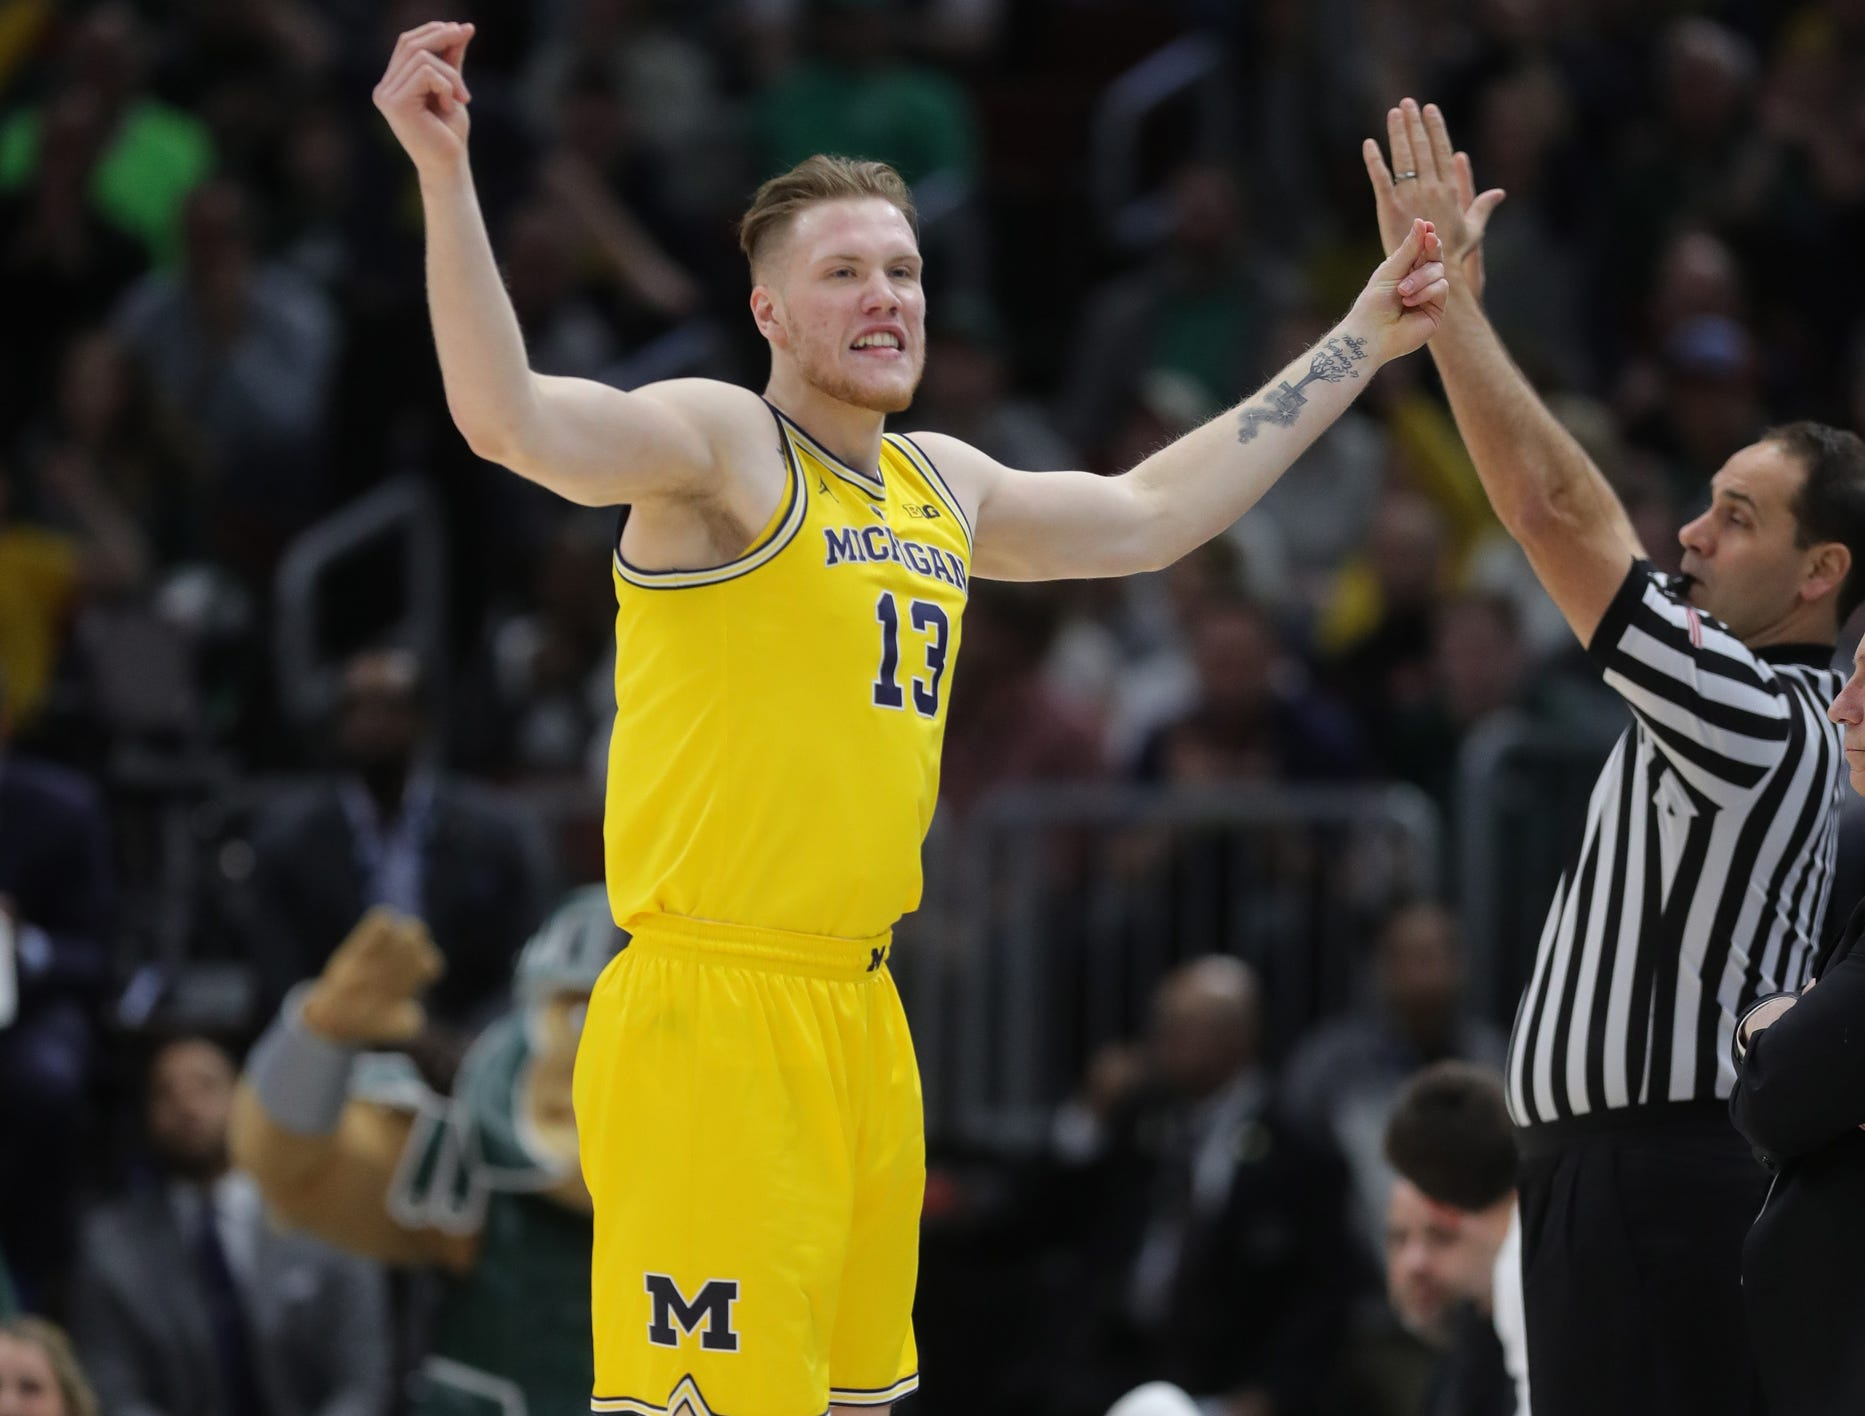 Michigan's Ignas Brazdeikis celebrates a 3-pointer against Michigan State during the first half of the Big Ten tournament championship Sunday, March 17, 2019 in Chicago.